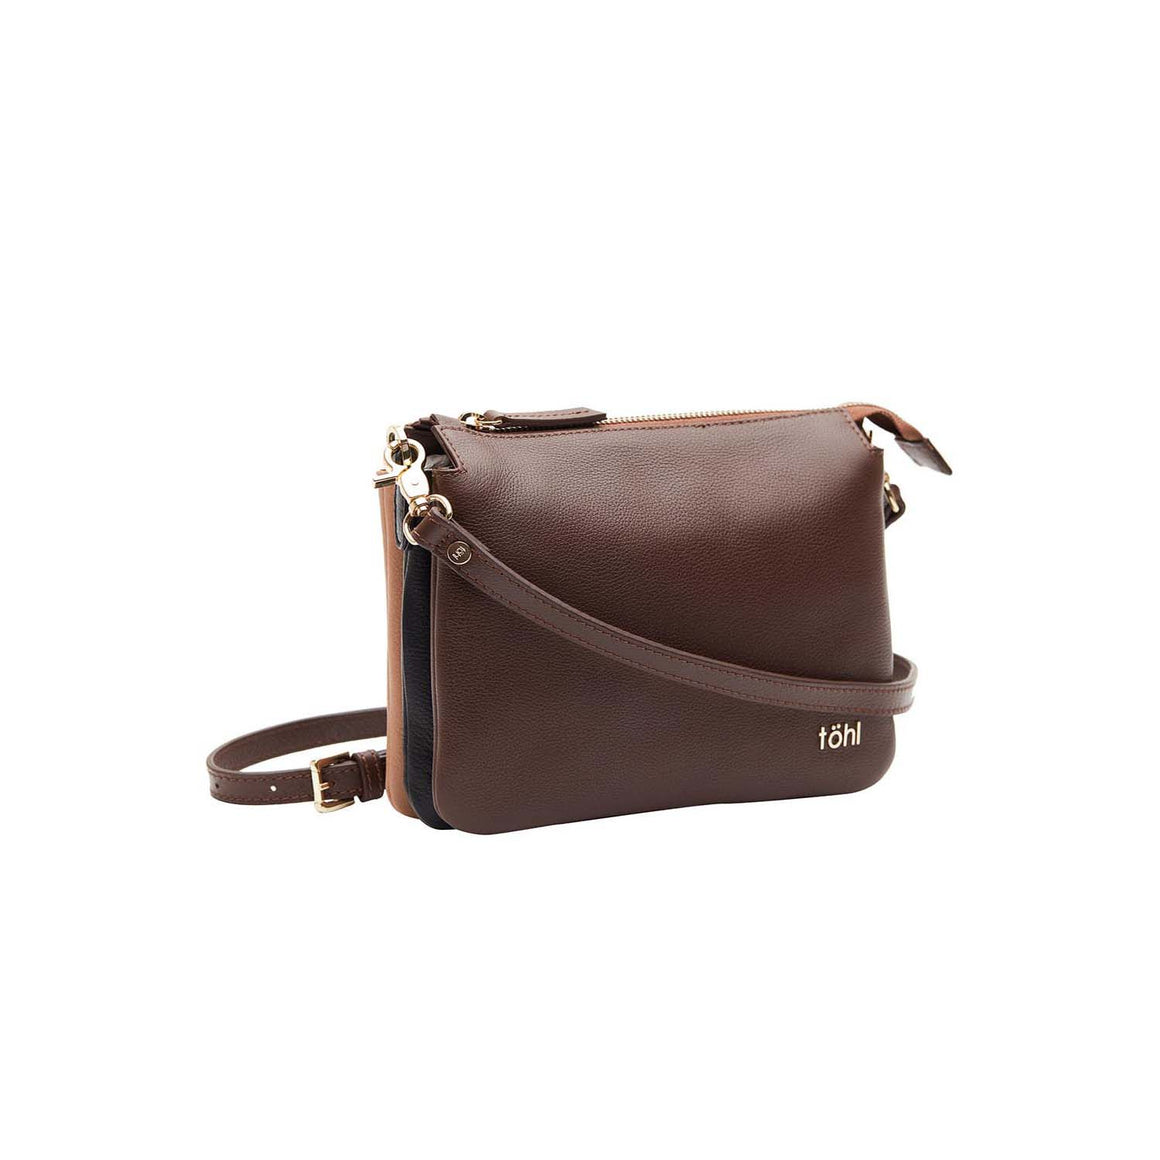 SG 0031 - TOHL DALREY WOMEN'S SLING & CROSSBODY BAG - CHOCO